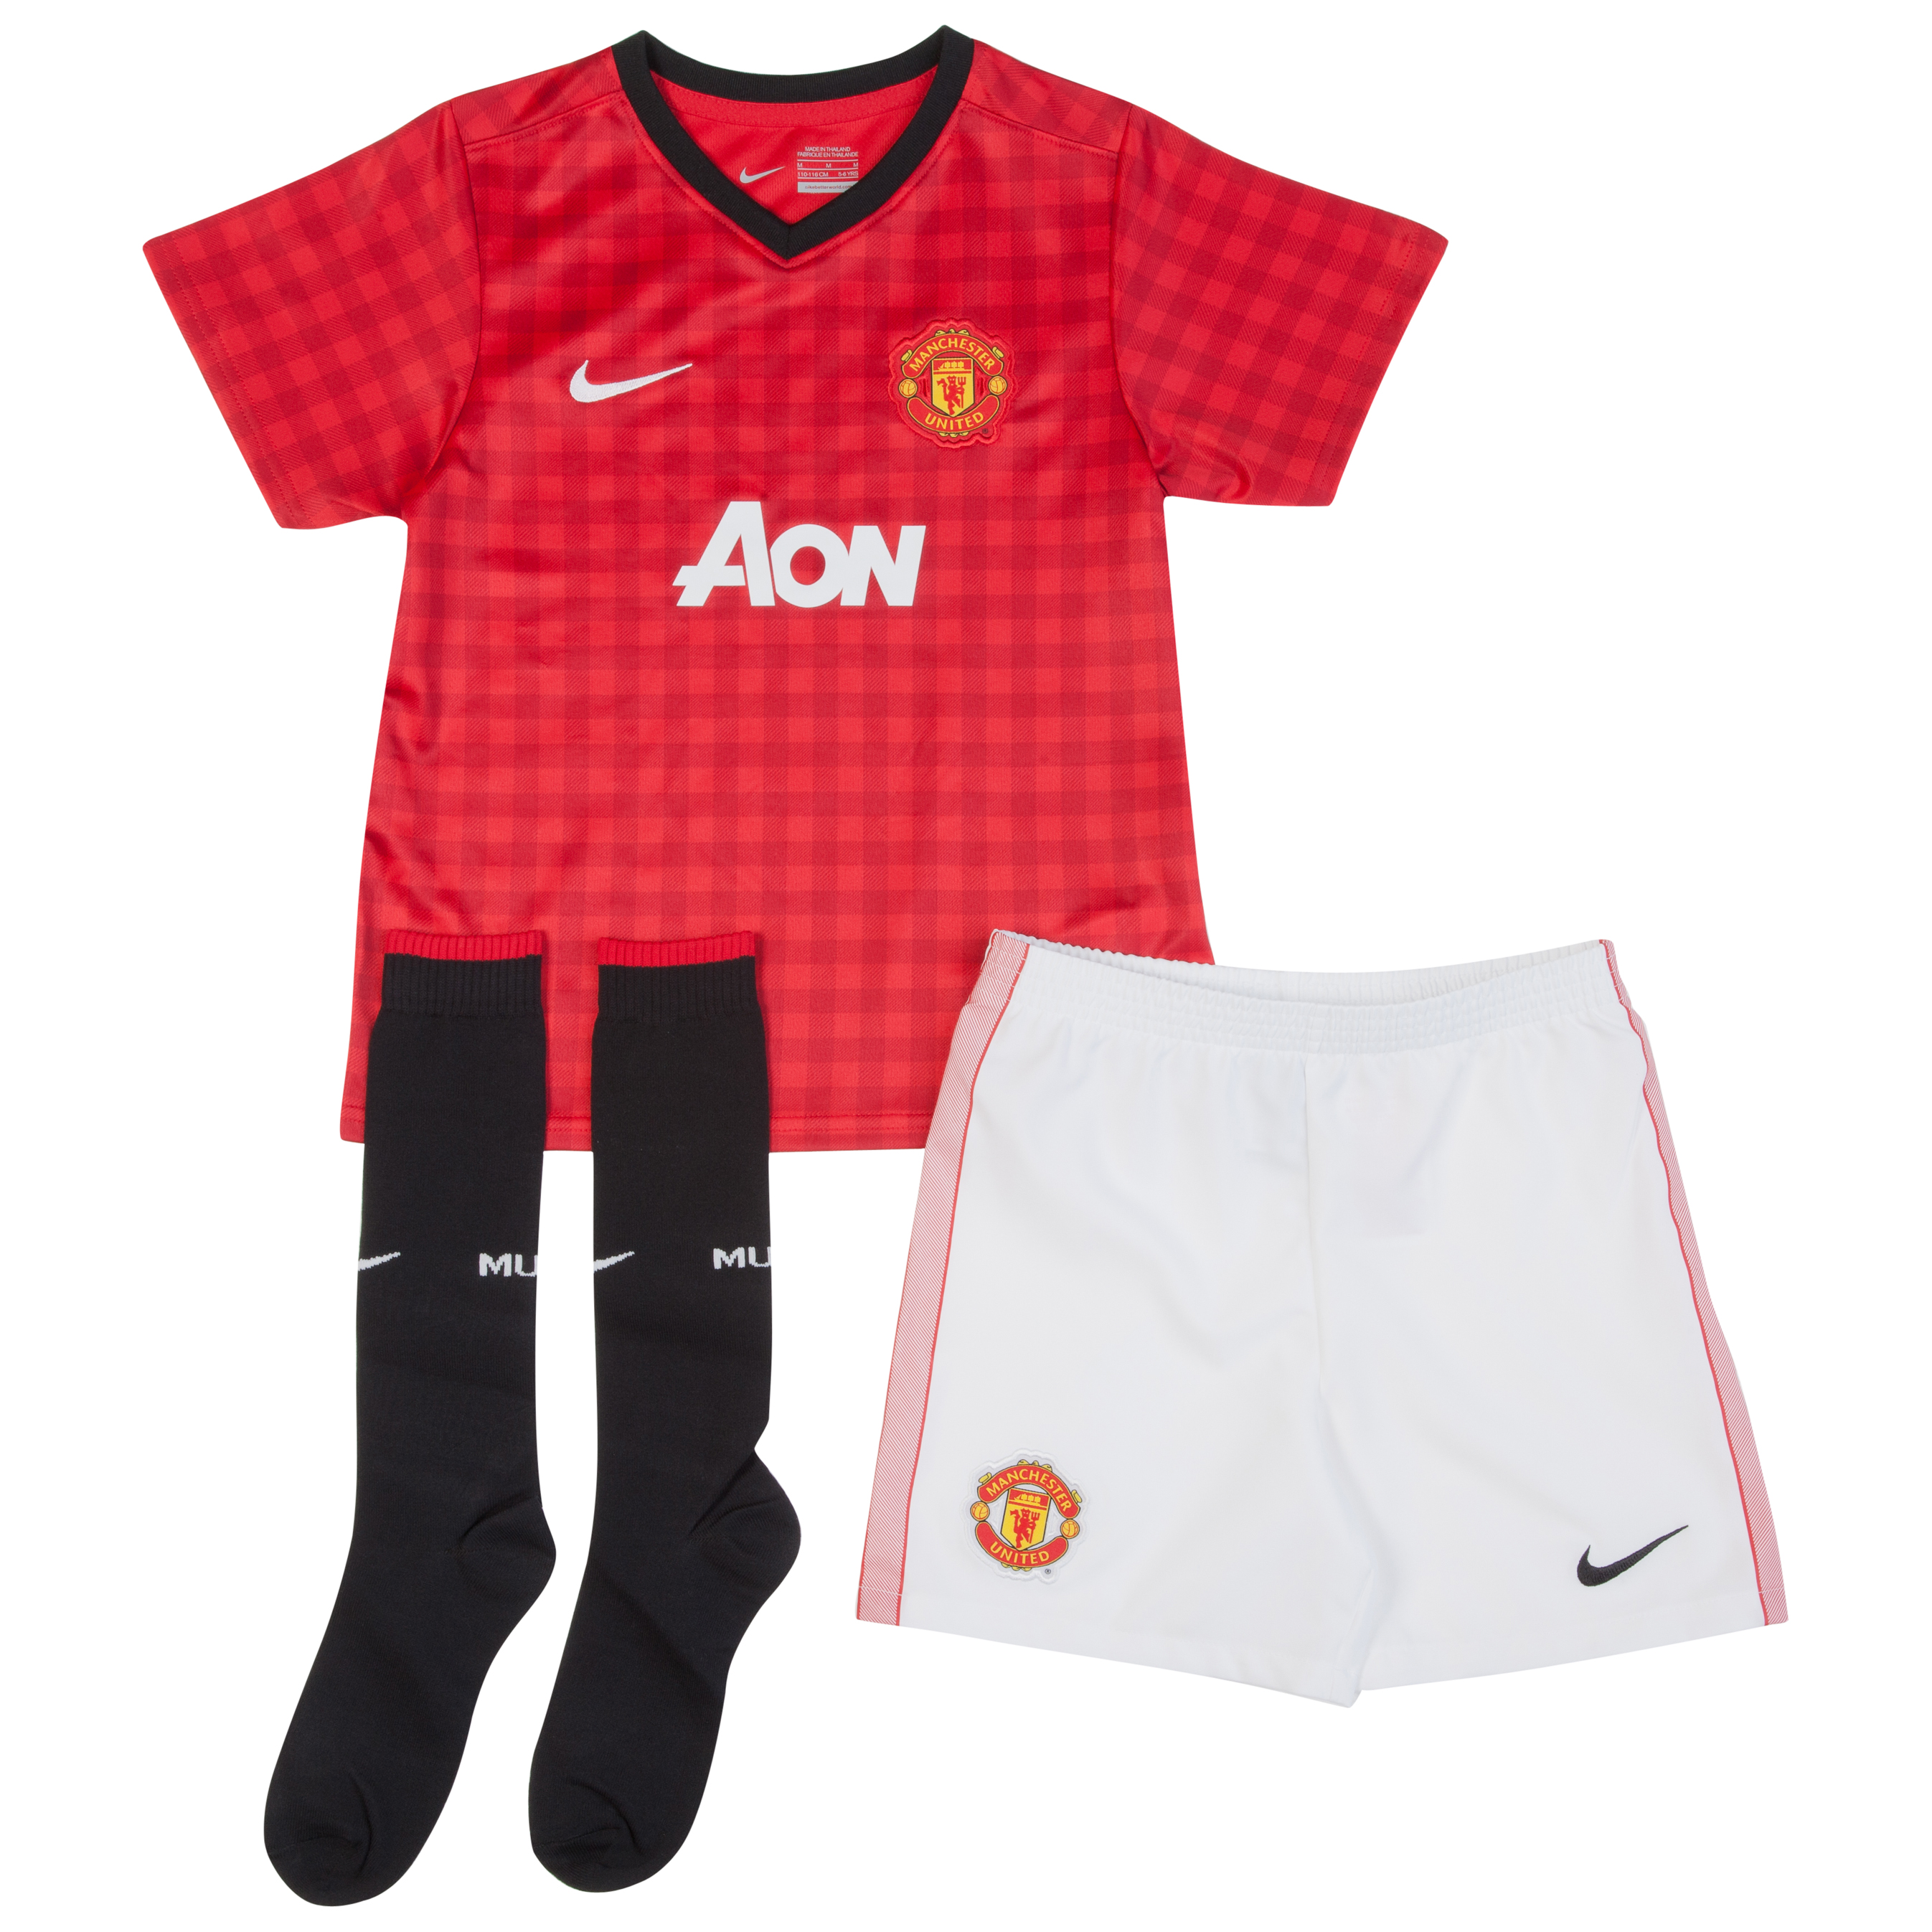 Manchester United Home Kit 2012/13 -  Little Boys